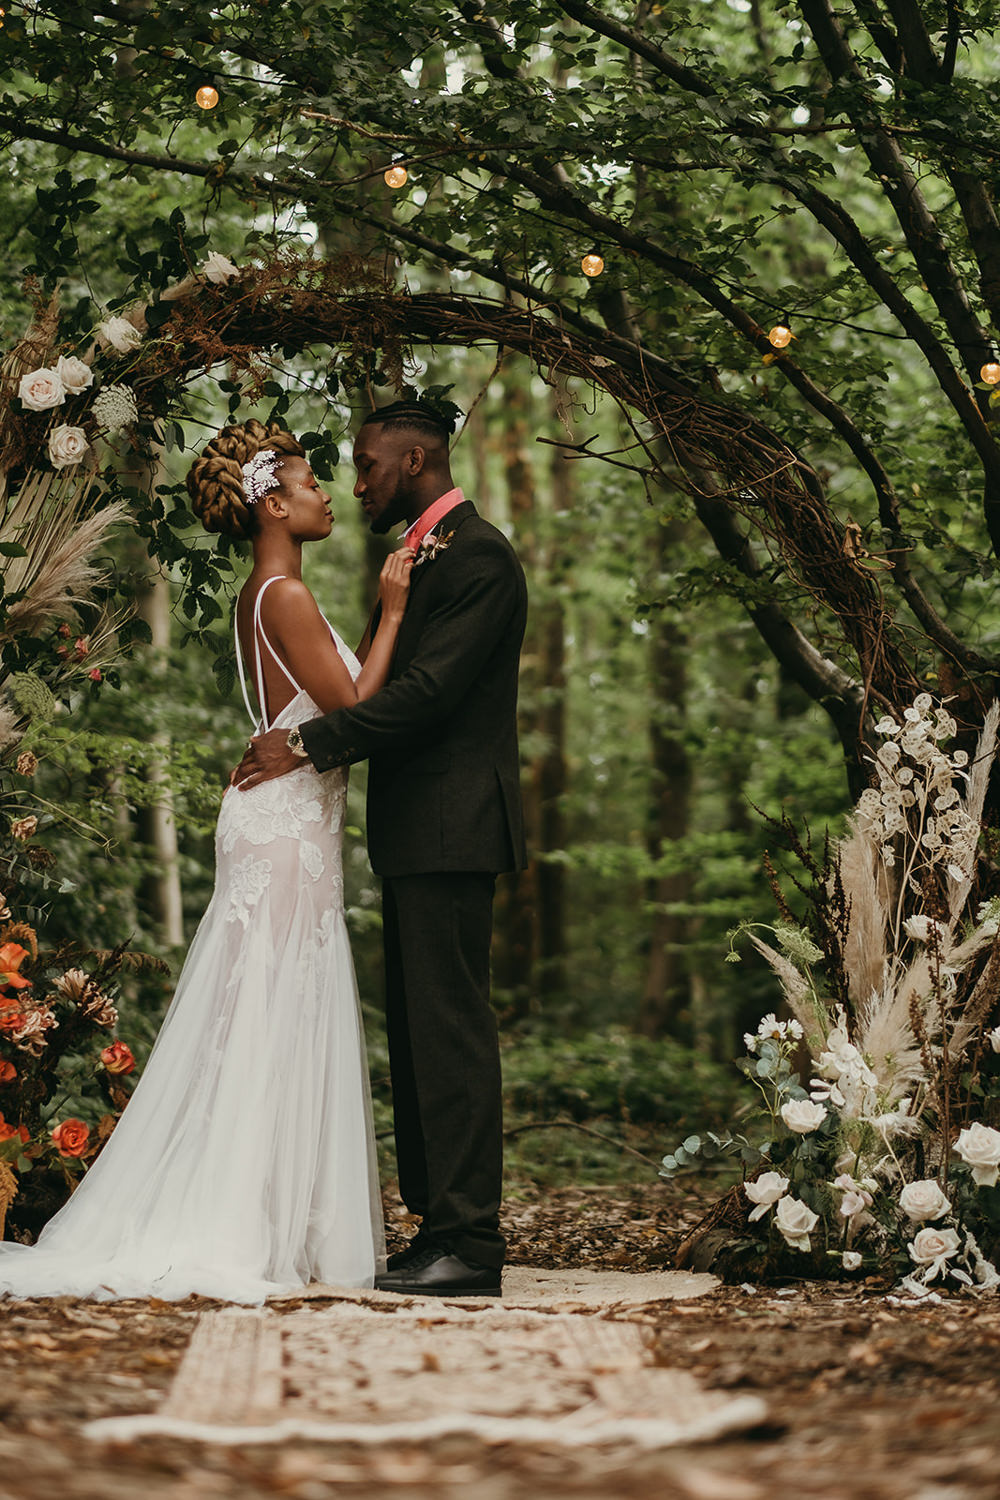 Woods Wedding Tom Jeavons Photography Flower Arch Moongate Backdrop